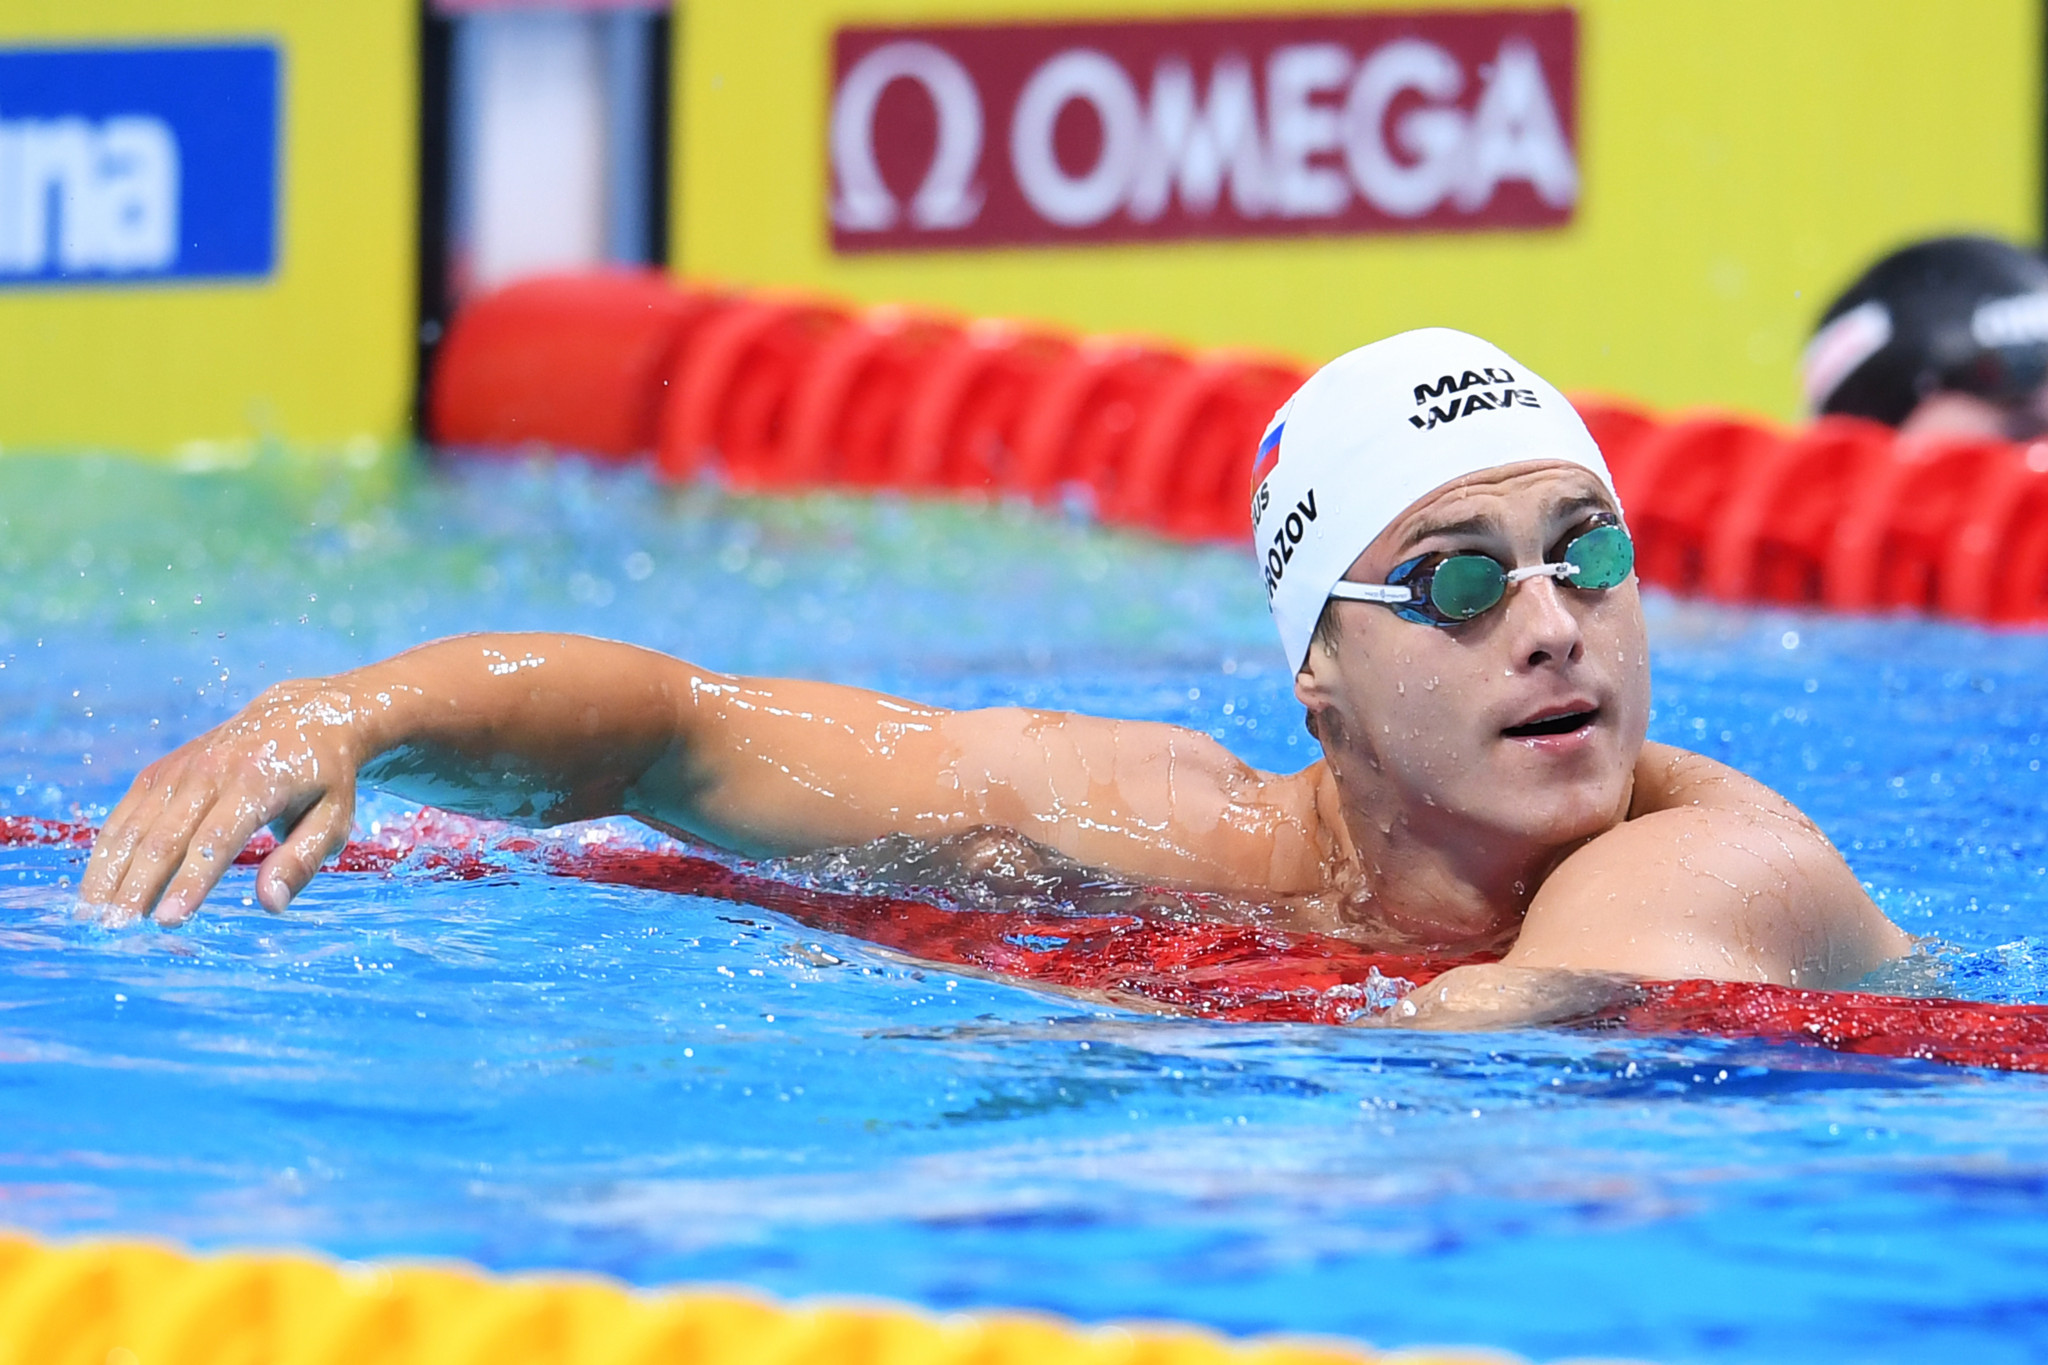 Vladimir Morozov leads the men's World Cup rankings ©Getty Images